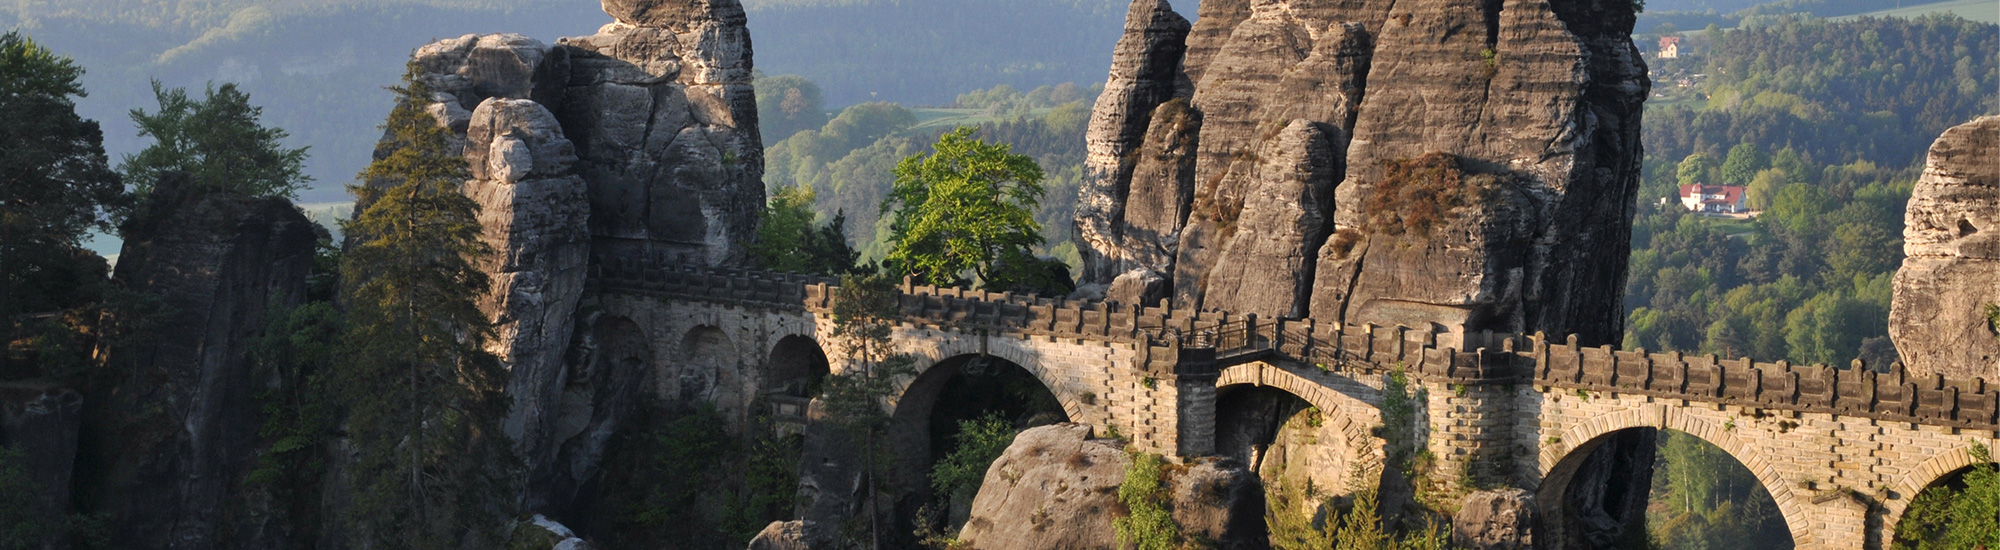 Active recreation in the Elbe Sandstone Mountains